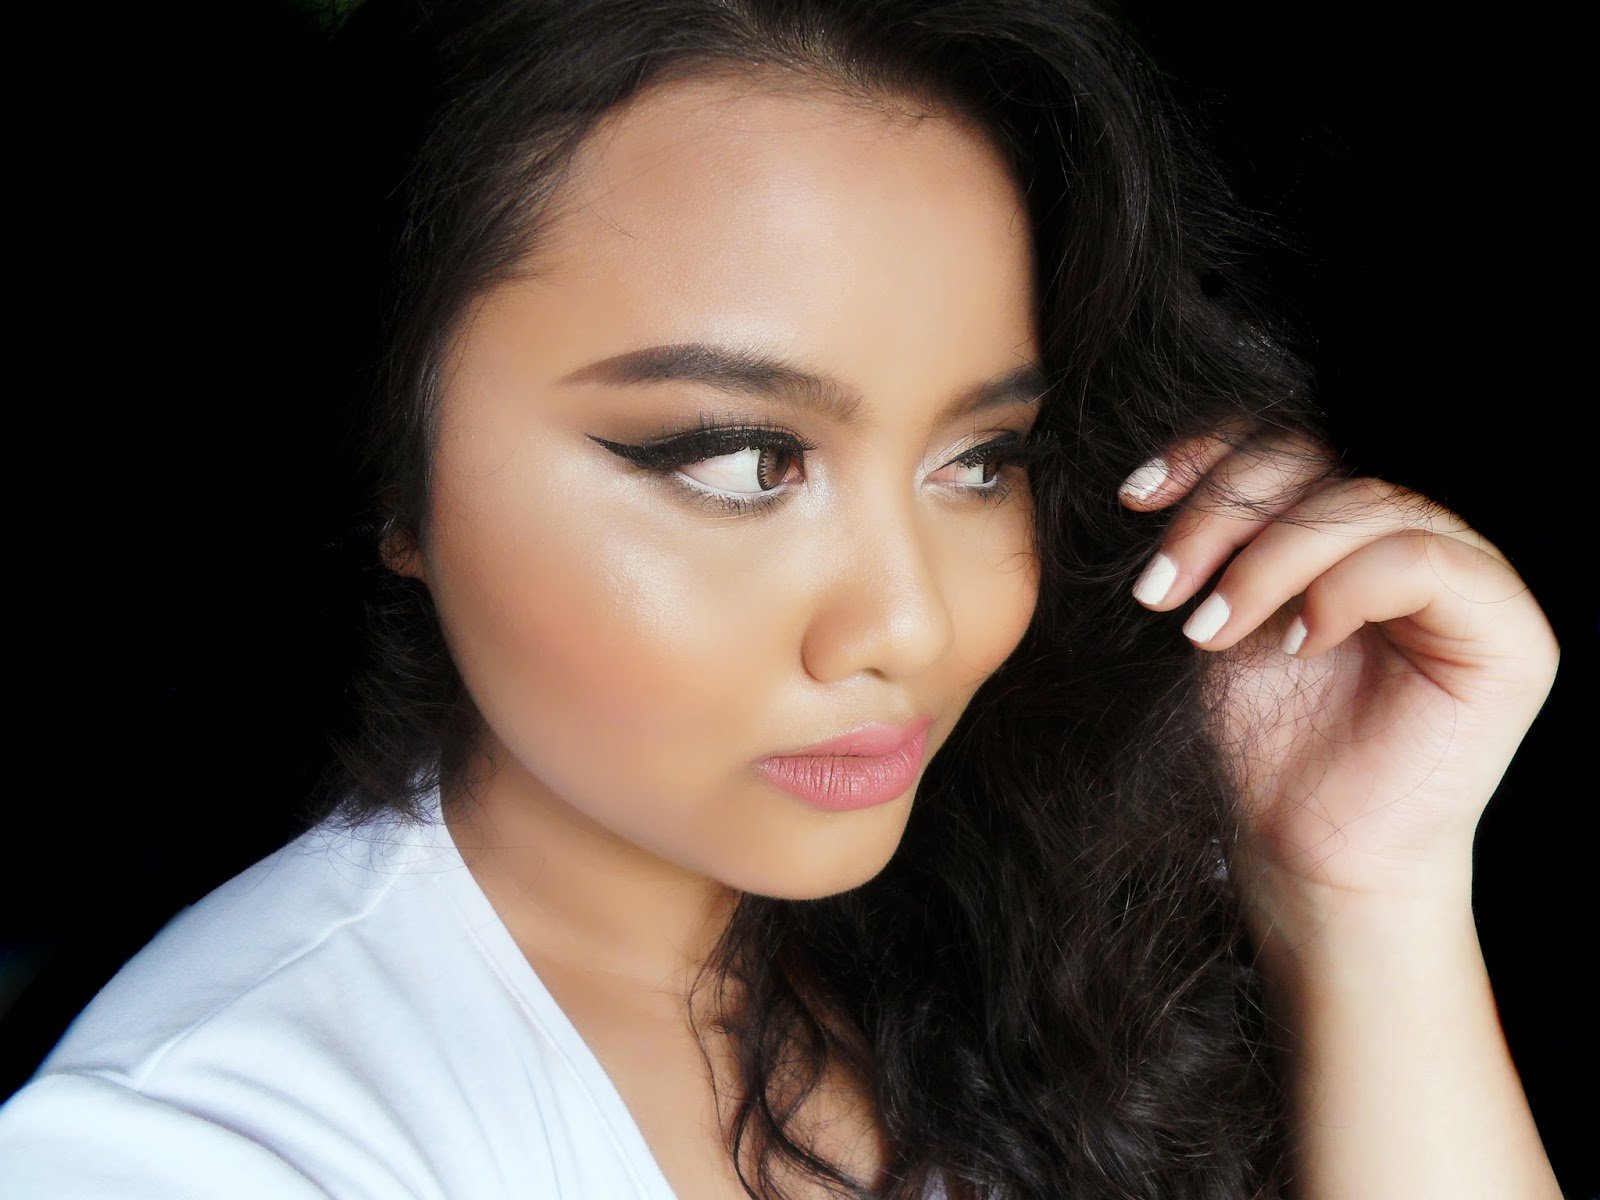 This image shows a full look using Urban Decay Naked 2 palette.